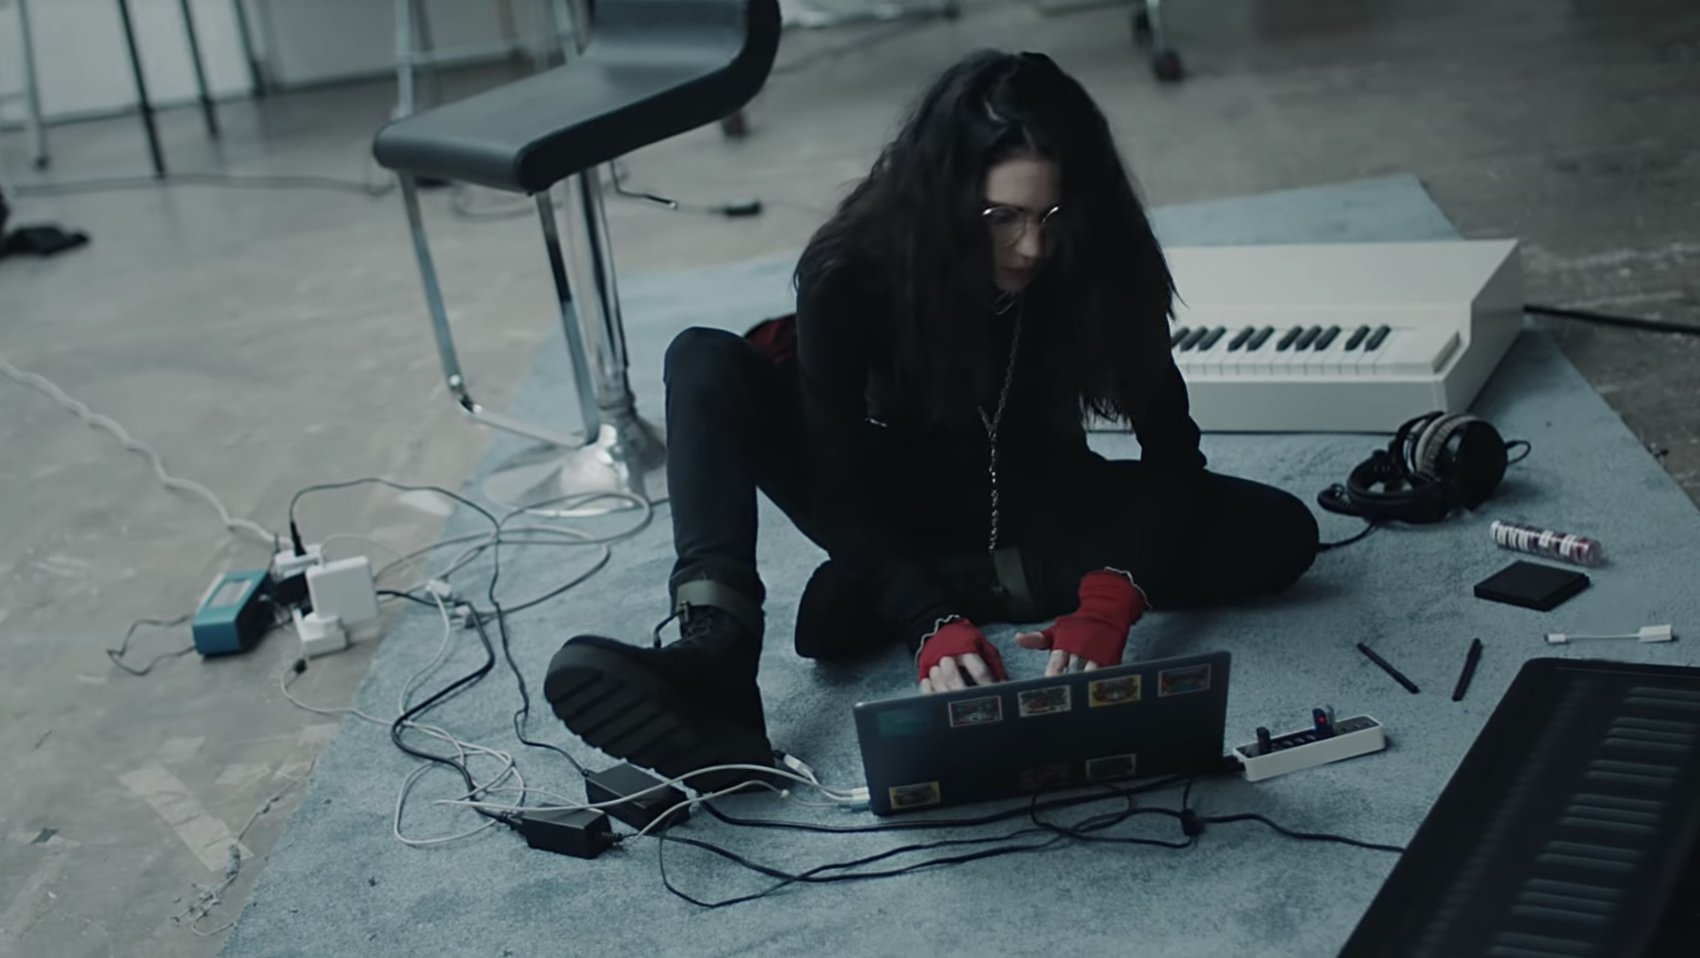 """Grimes stars in Mac ad featuring new song """"that's what the drugs are for"""" (watch) https://t.co/XTSAi1KAPJ https://t.co/RAPIHRlWEJ"""